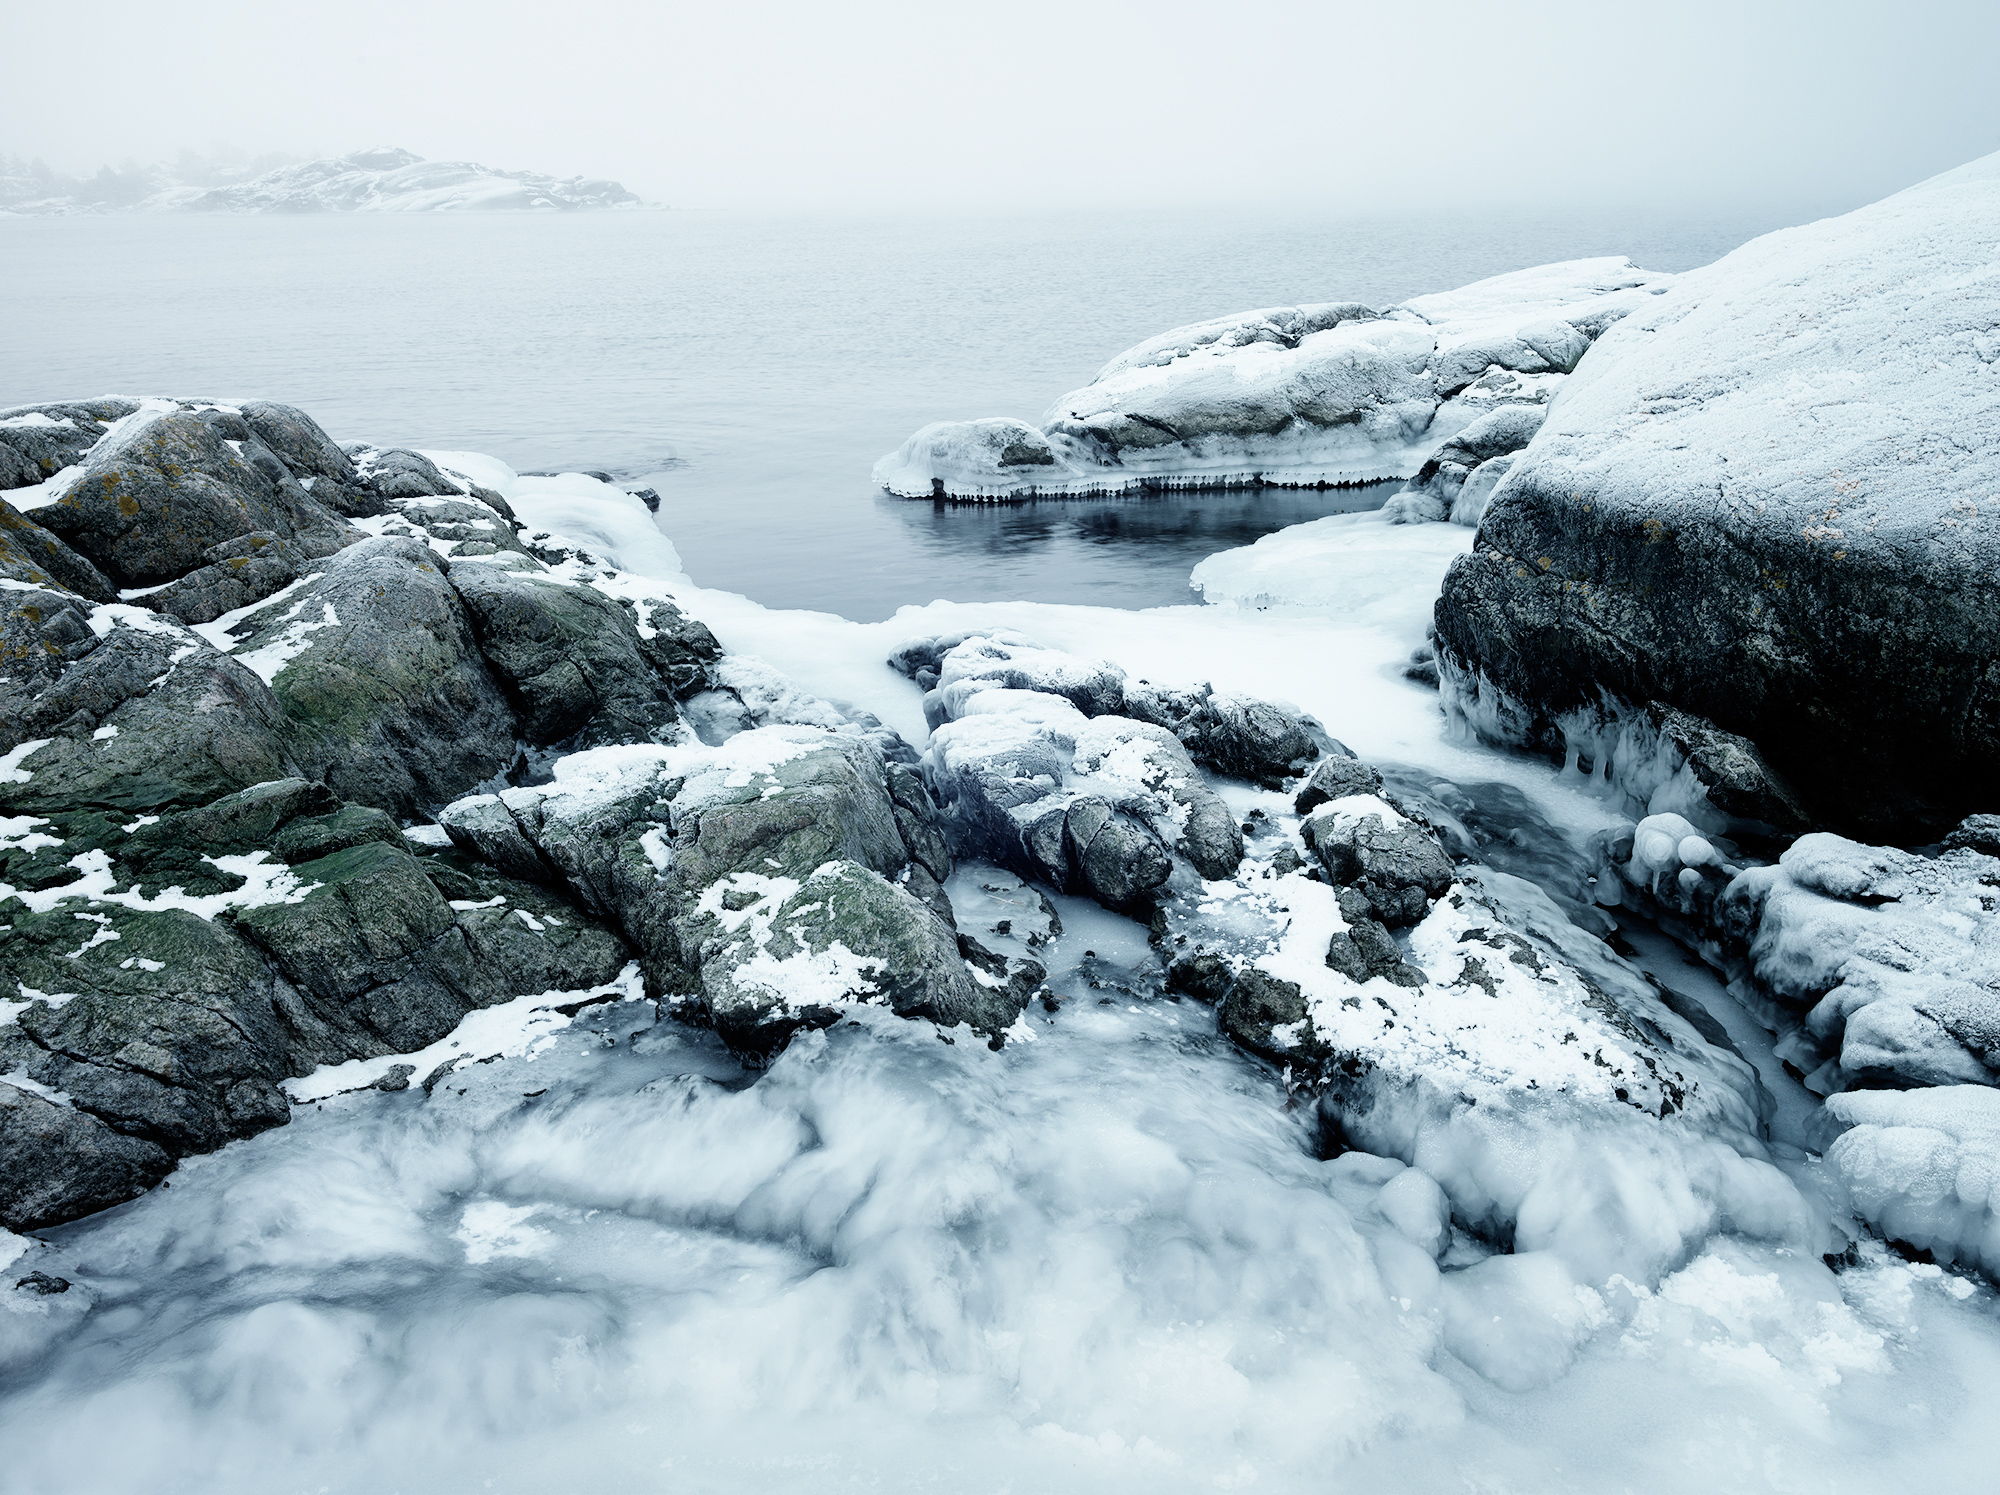 Digital Photography: Winter Haze by Philip Karlberg